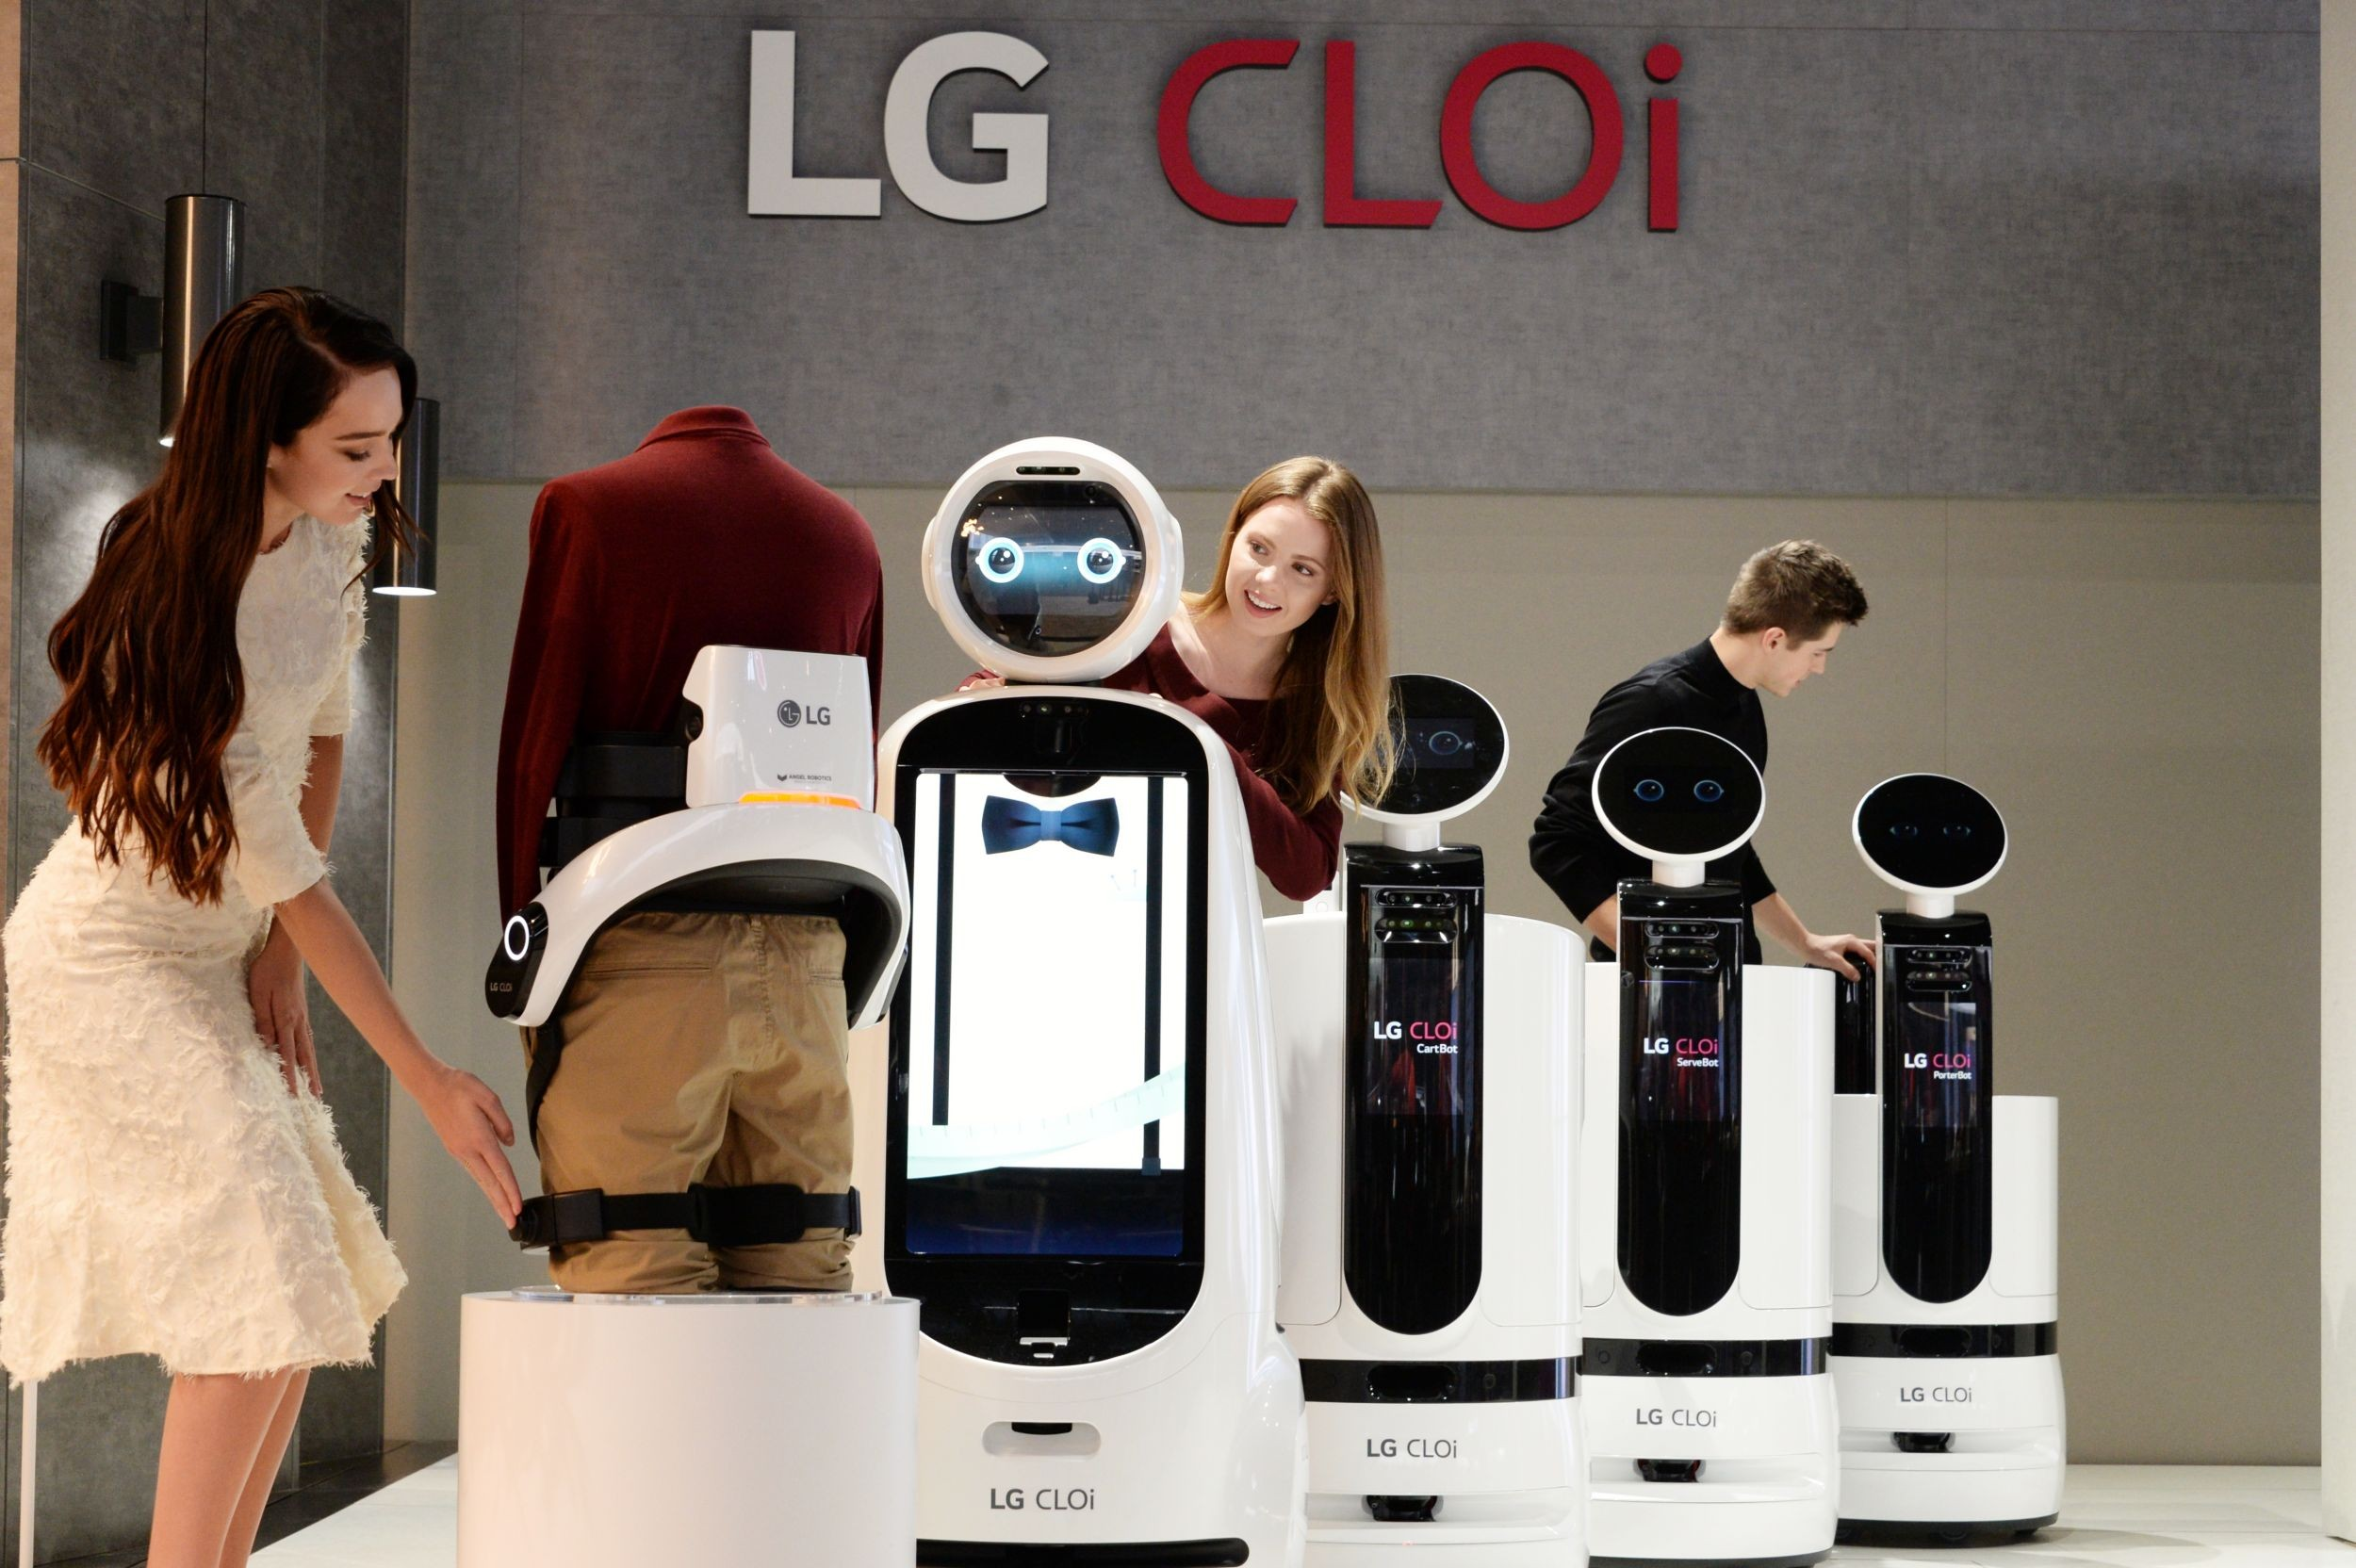 LG CLOi robots for the workplace hospitality and retail industries